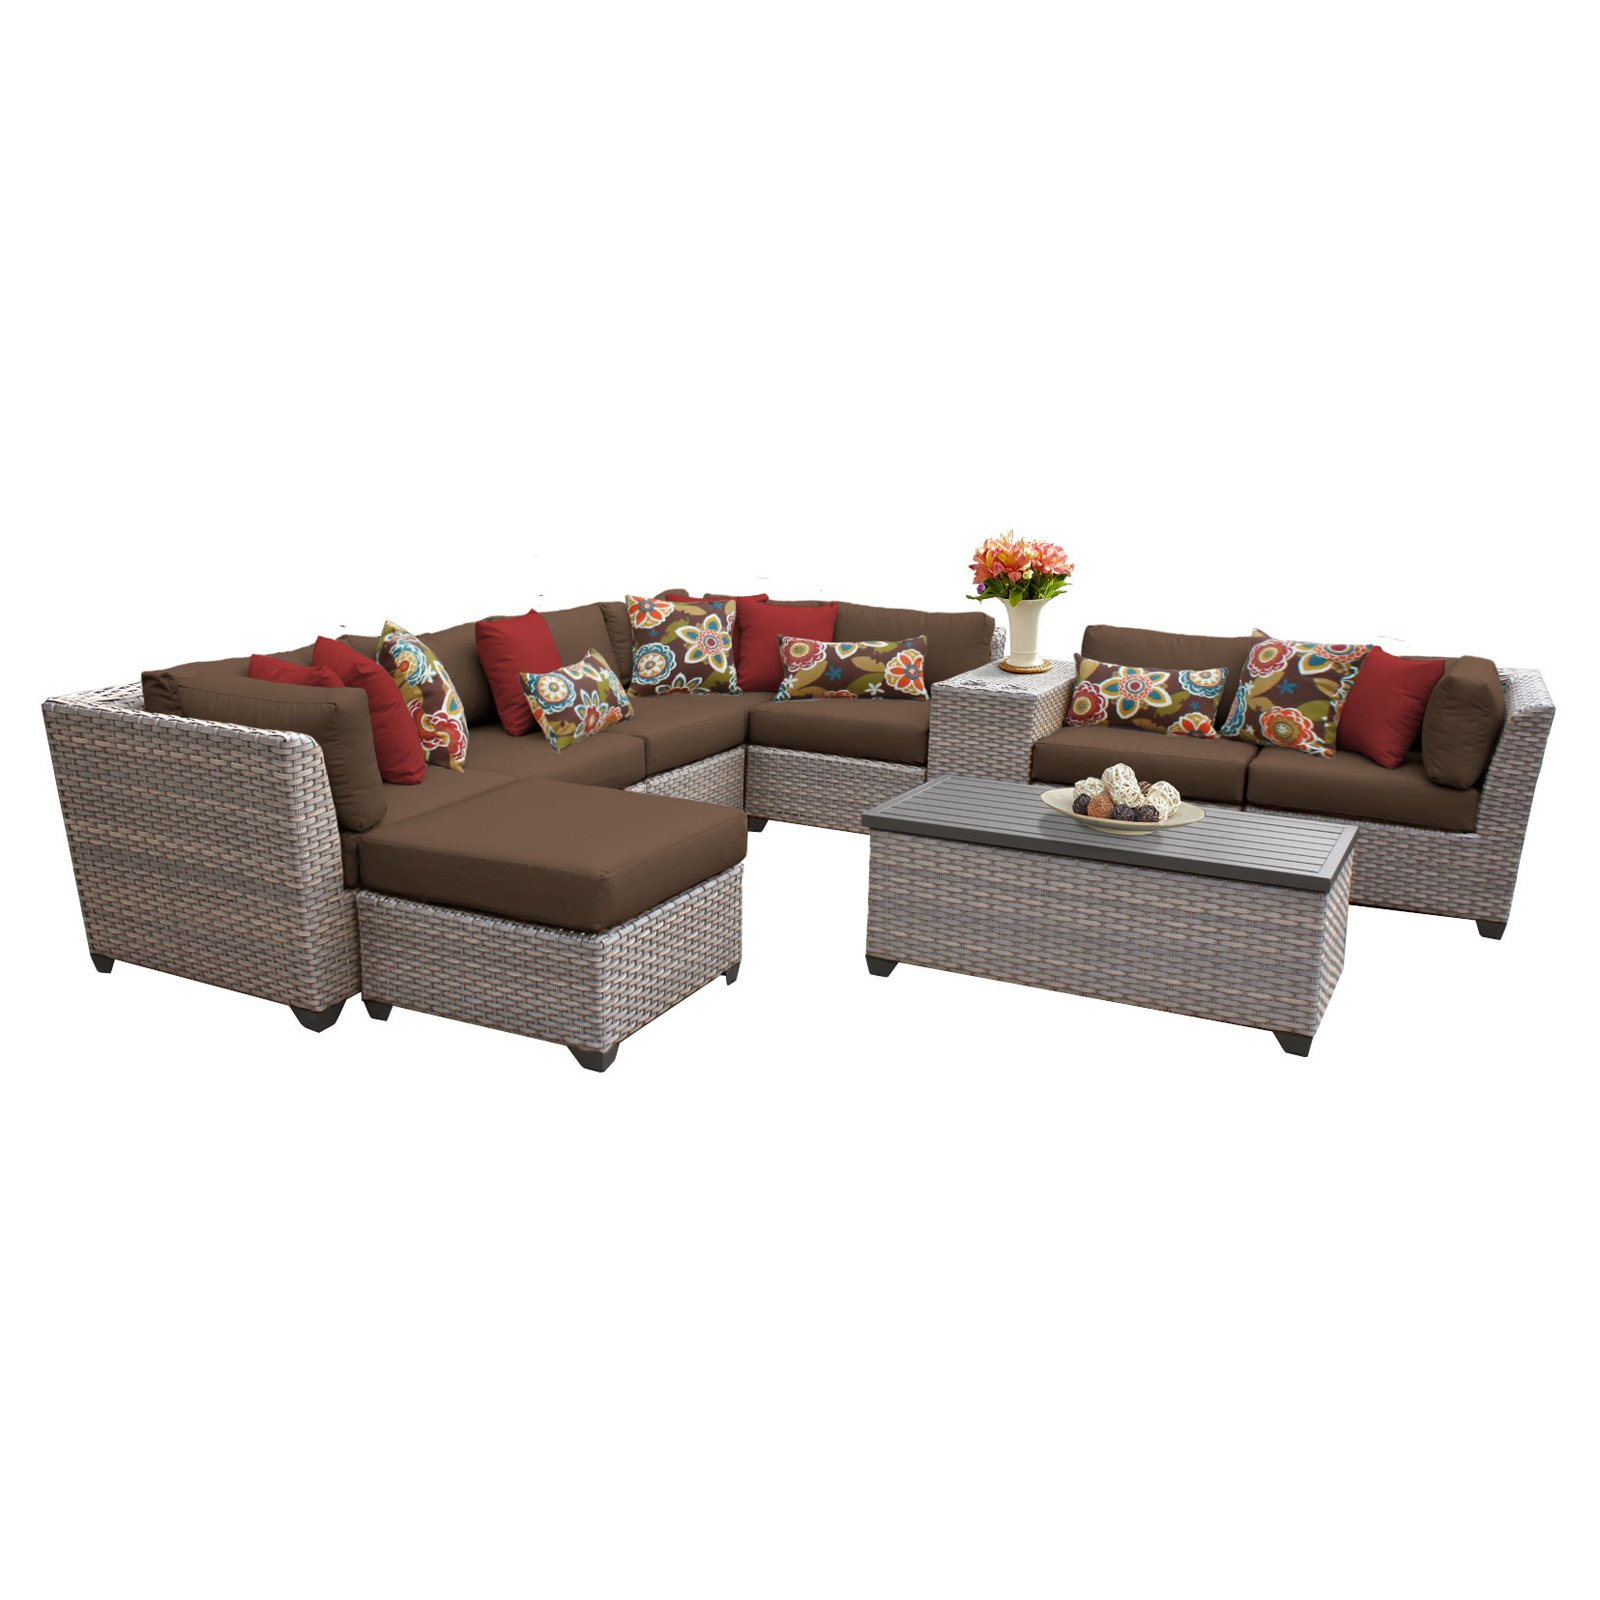 TK Classics Florence Wicker 10 Piece Patio Conversation Set with Ottoman and 2 Sets of Cushion Covers